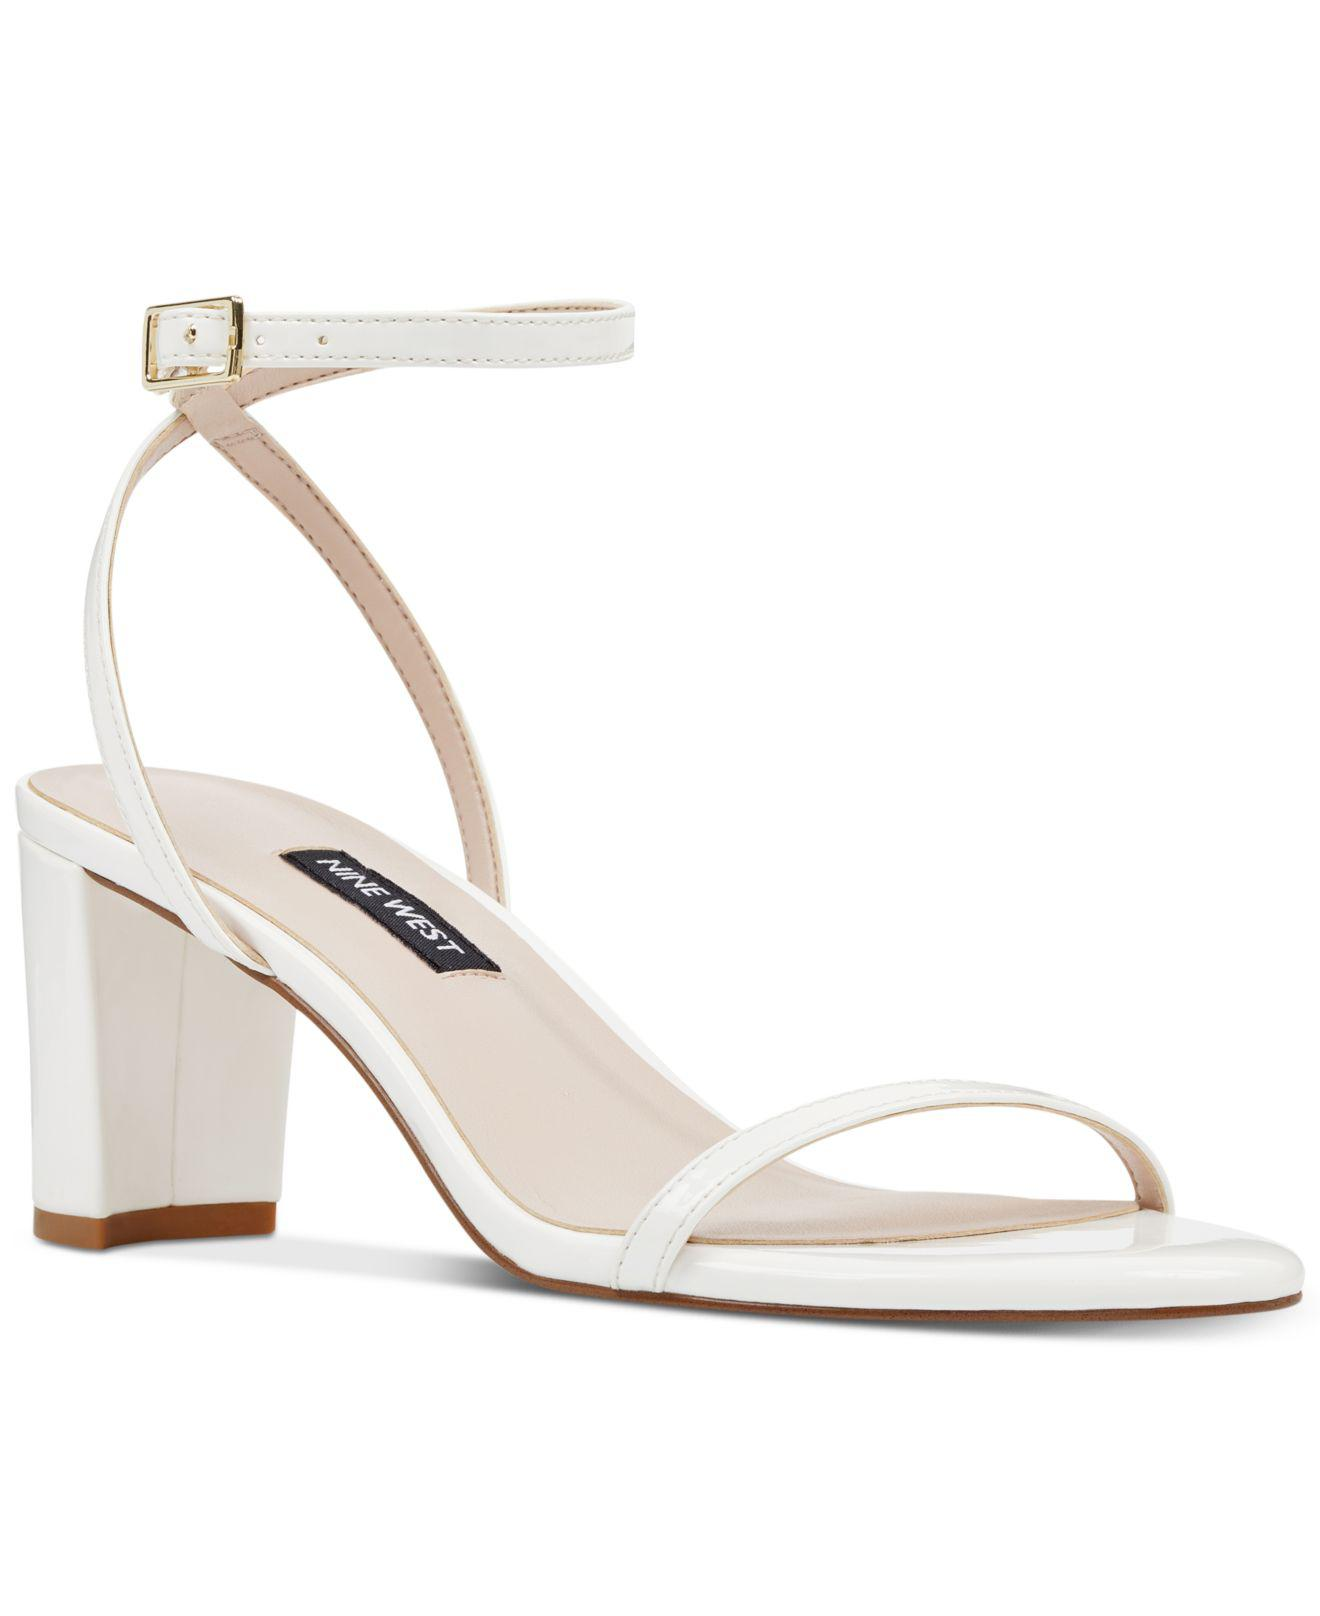 4d47c7992 Lyst - Nine West Provein Dress Sandals in White